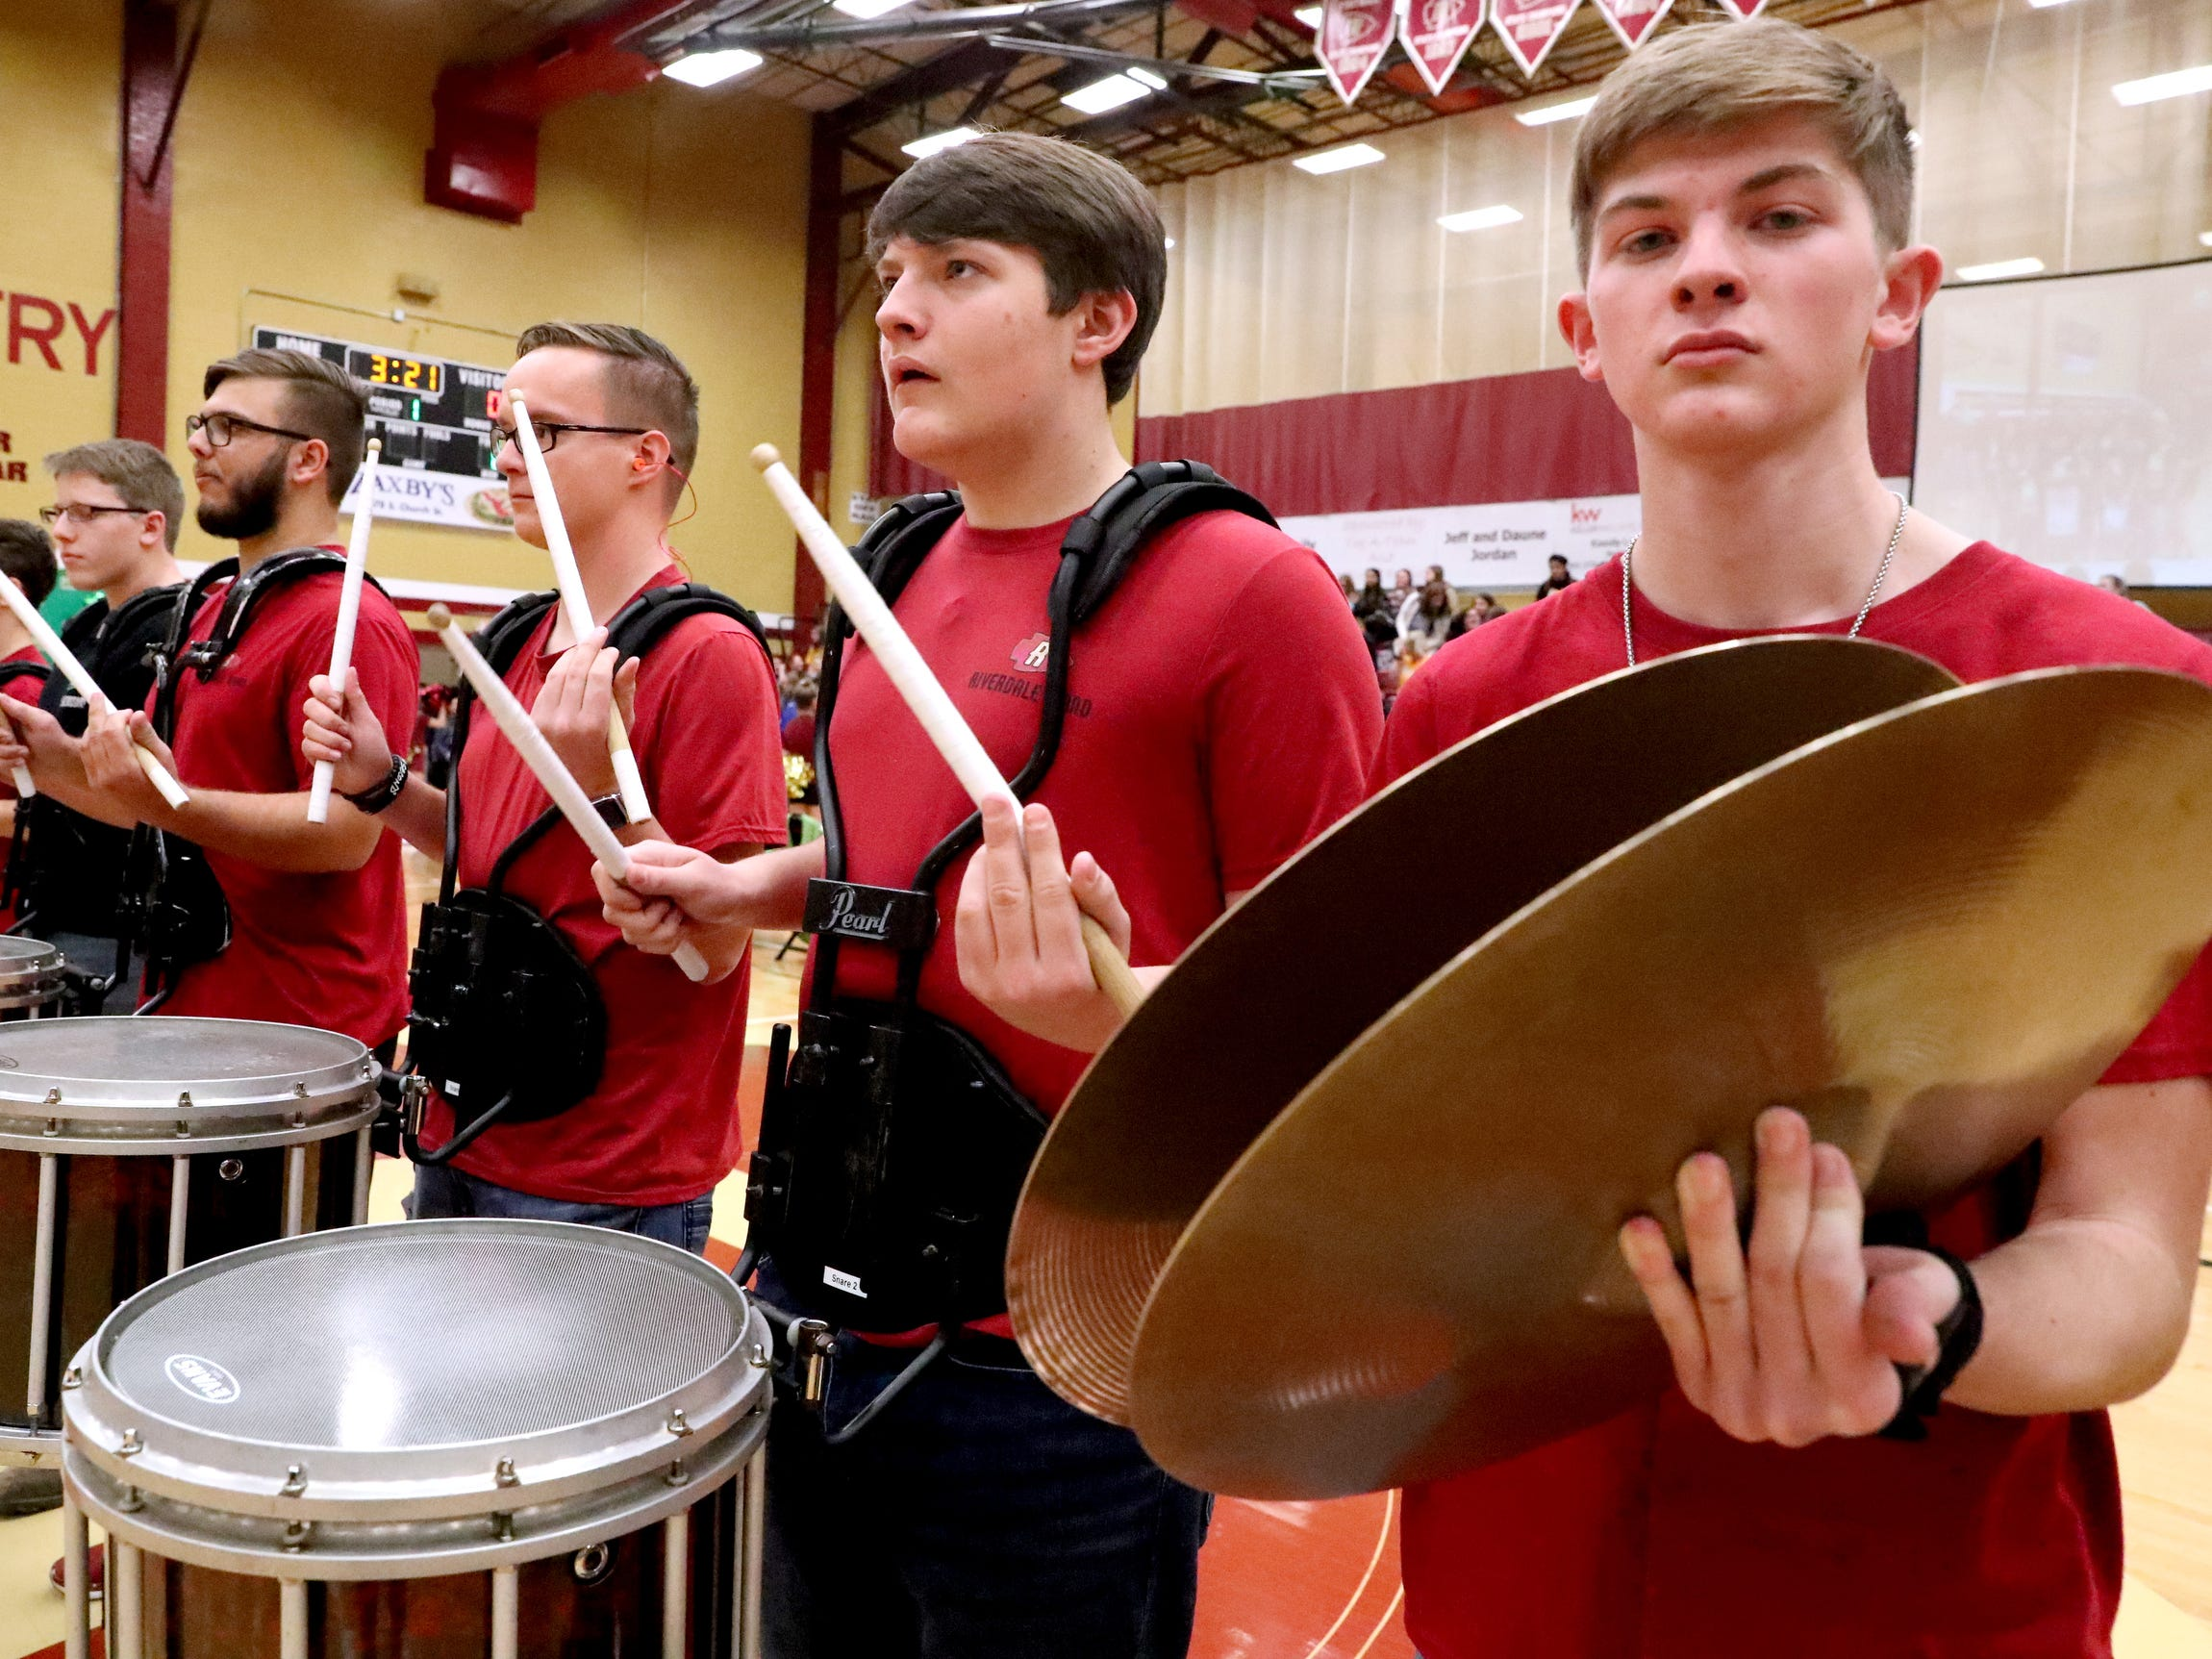 Riverdale High School drum line played at the sixth annual Brave the Shave fundraiser to benefit St. Baldrick's Foundation on Thursday, March 21, 2019. The organization raises funds and awareness for childhood cancer.